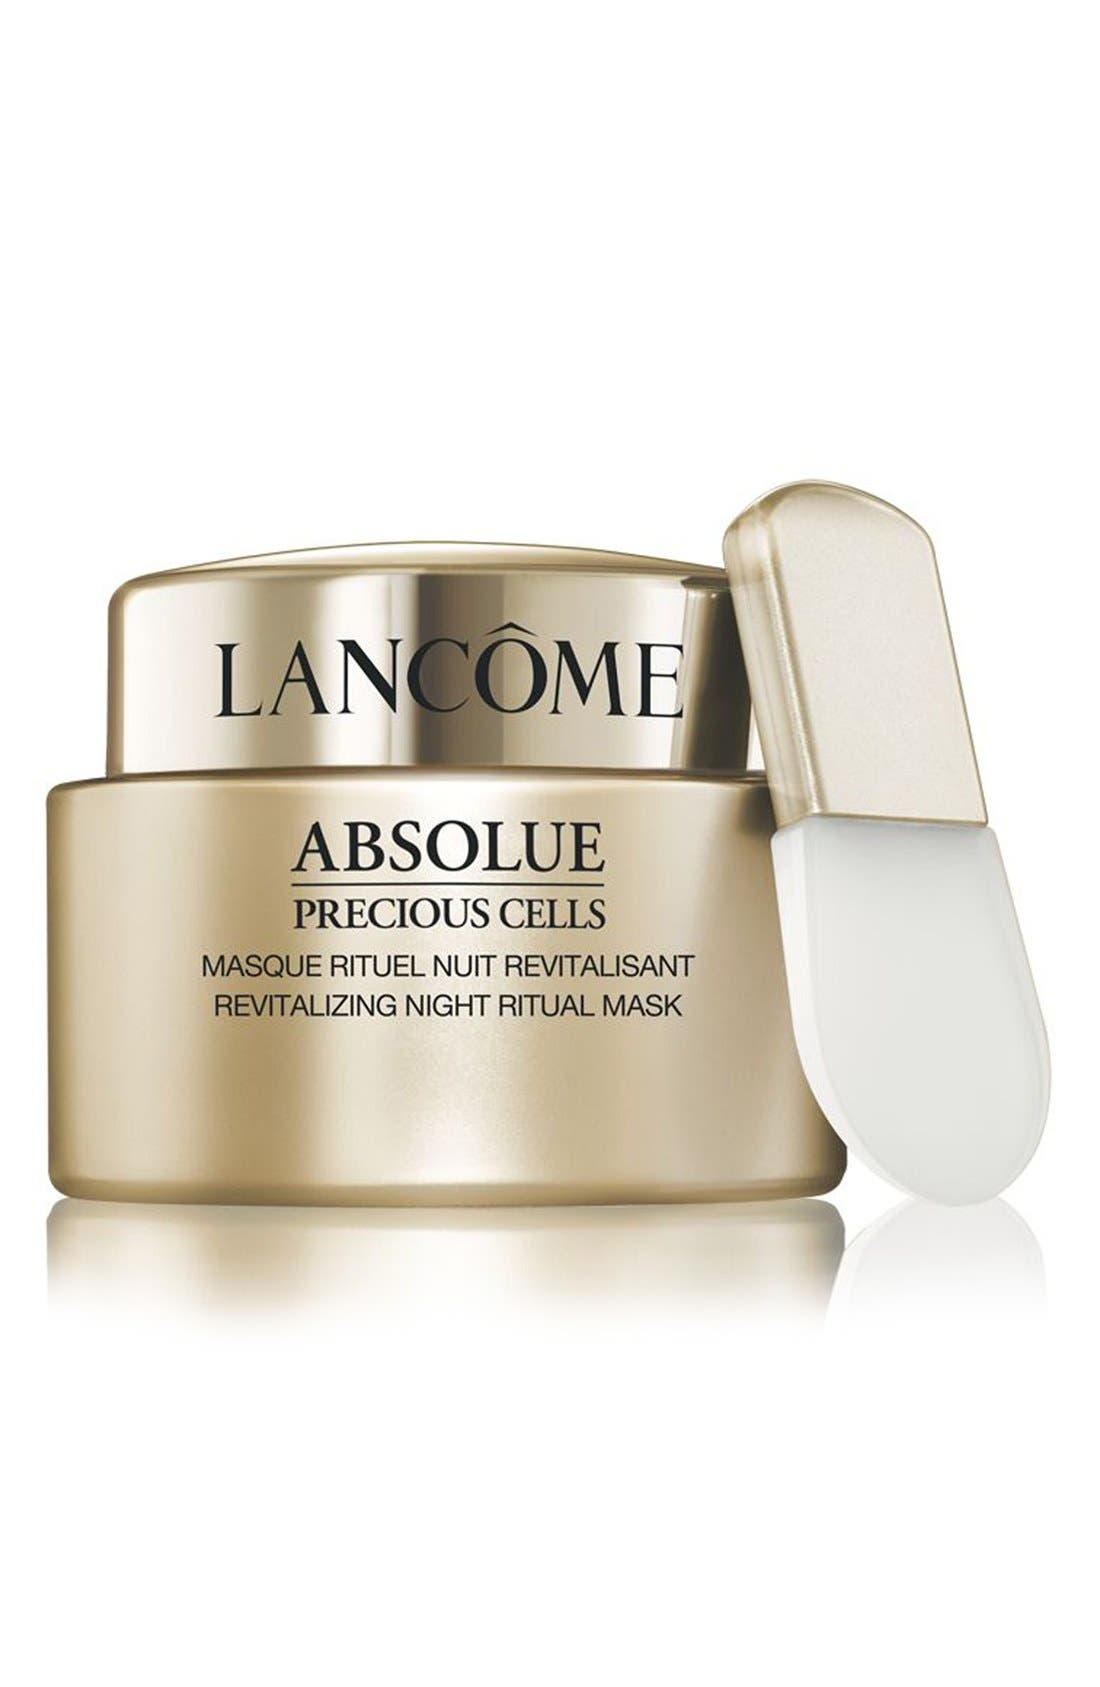 Absolue Precious Cells Revitalizing Night Ritual Mask,                             Main thumbnail 1, color,                             000